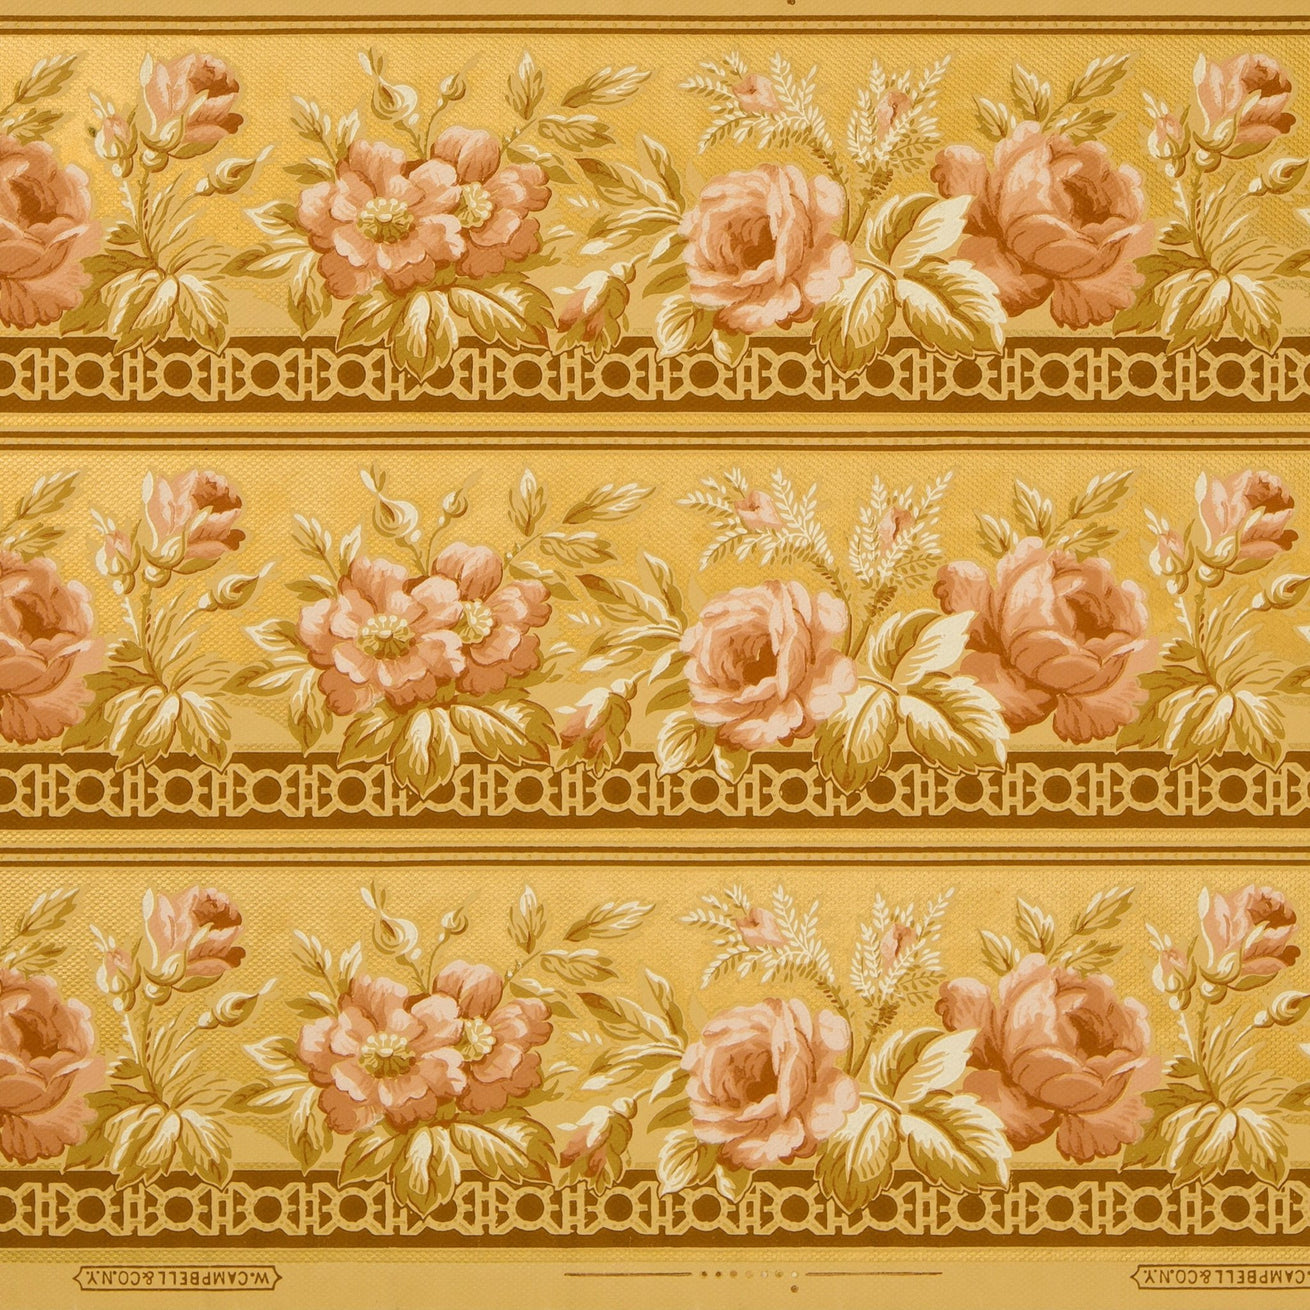 Blended 3-Band Border with Gilt Scrolls and Roses - Antique Wallpaper Remnant